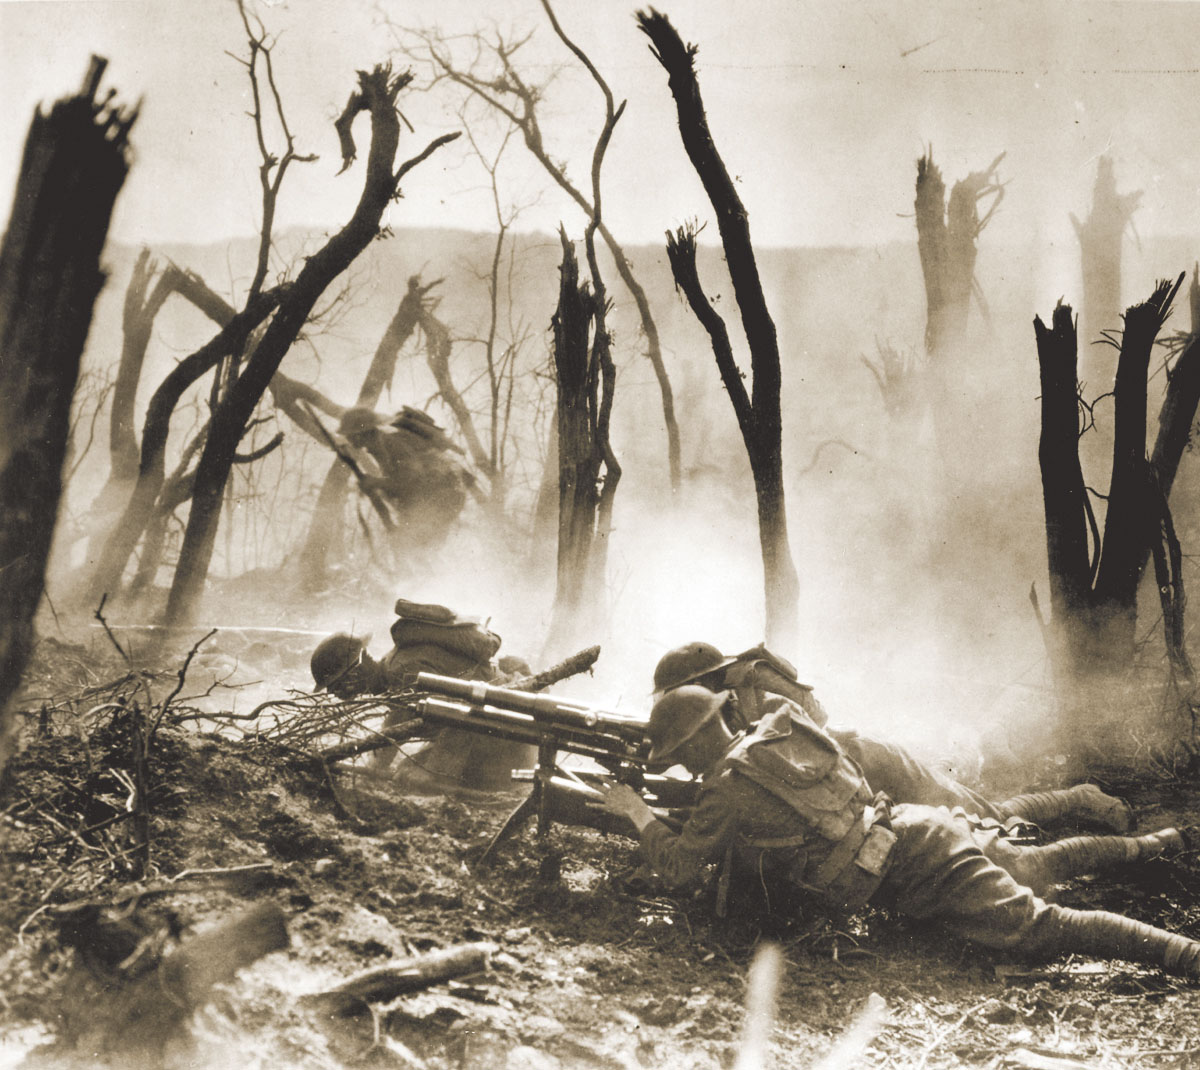 Notable firsts from World War I